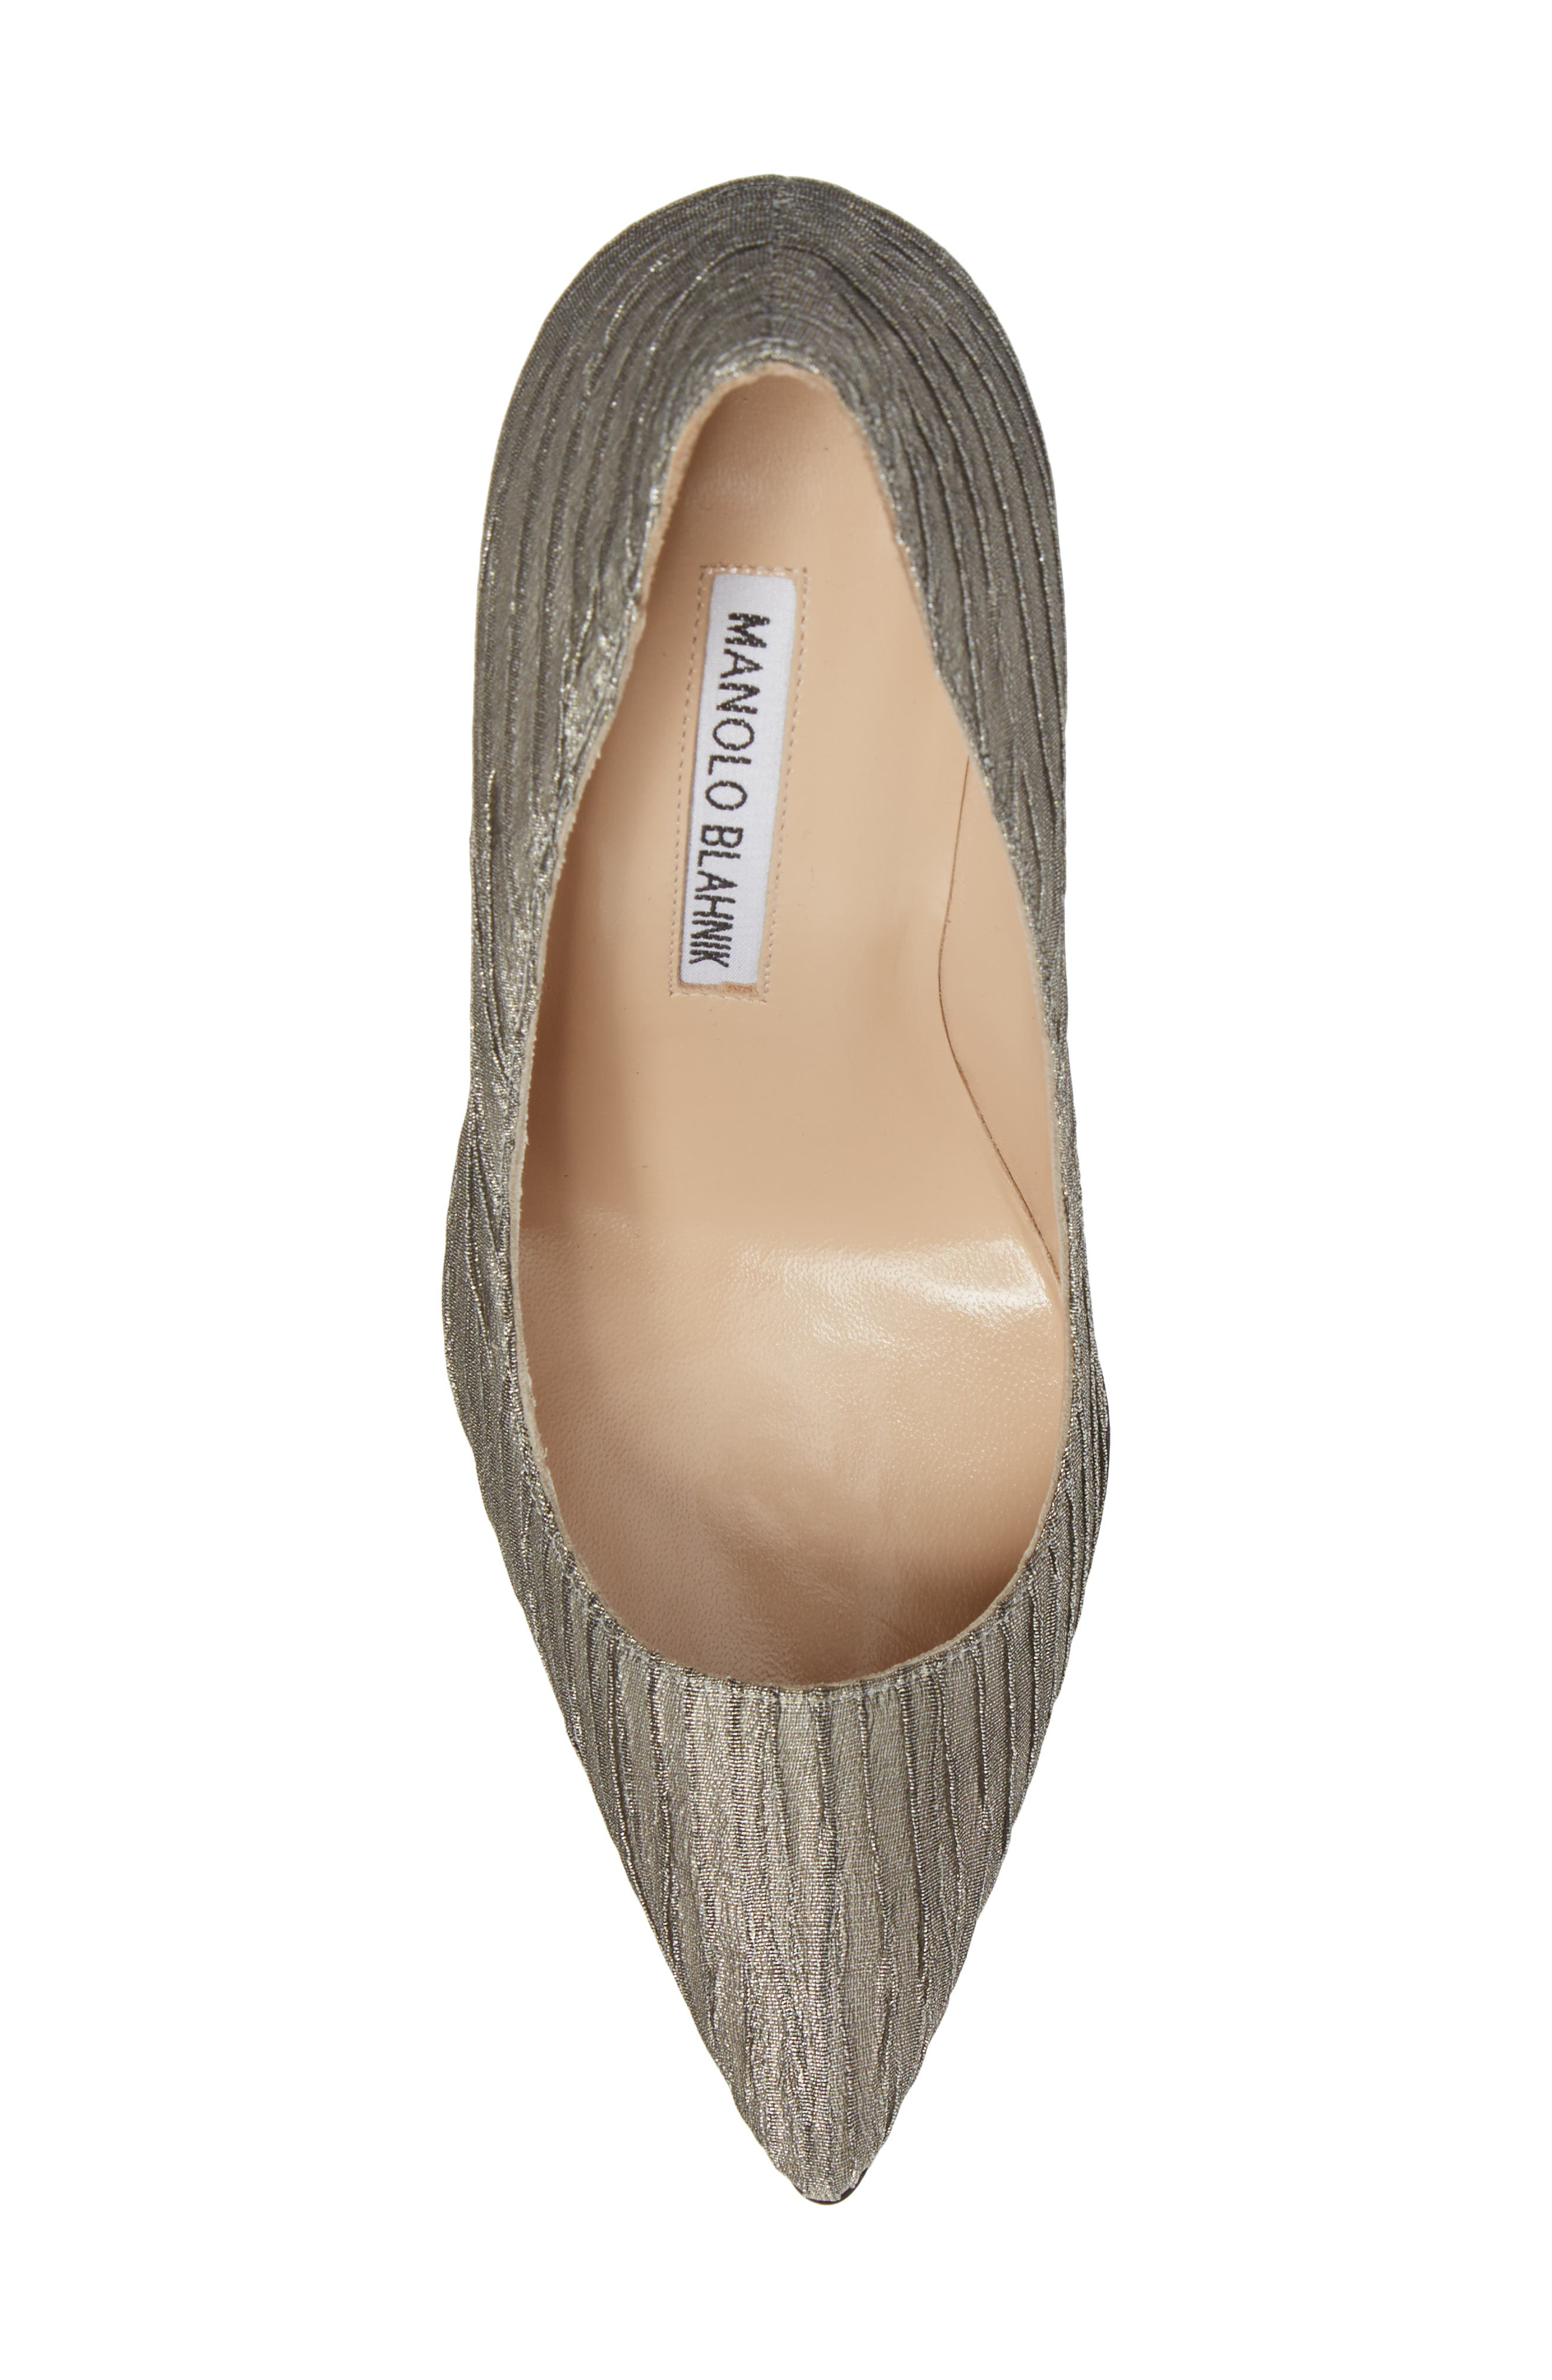 BB Pointy Toe Pump,                             Alternate thumbnail 63, color,